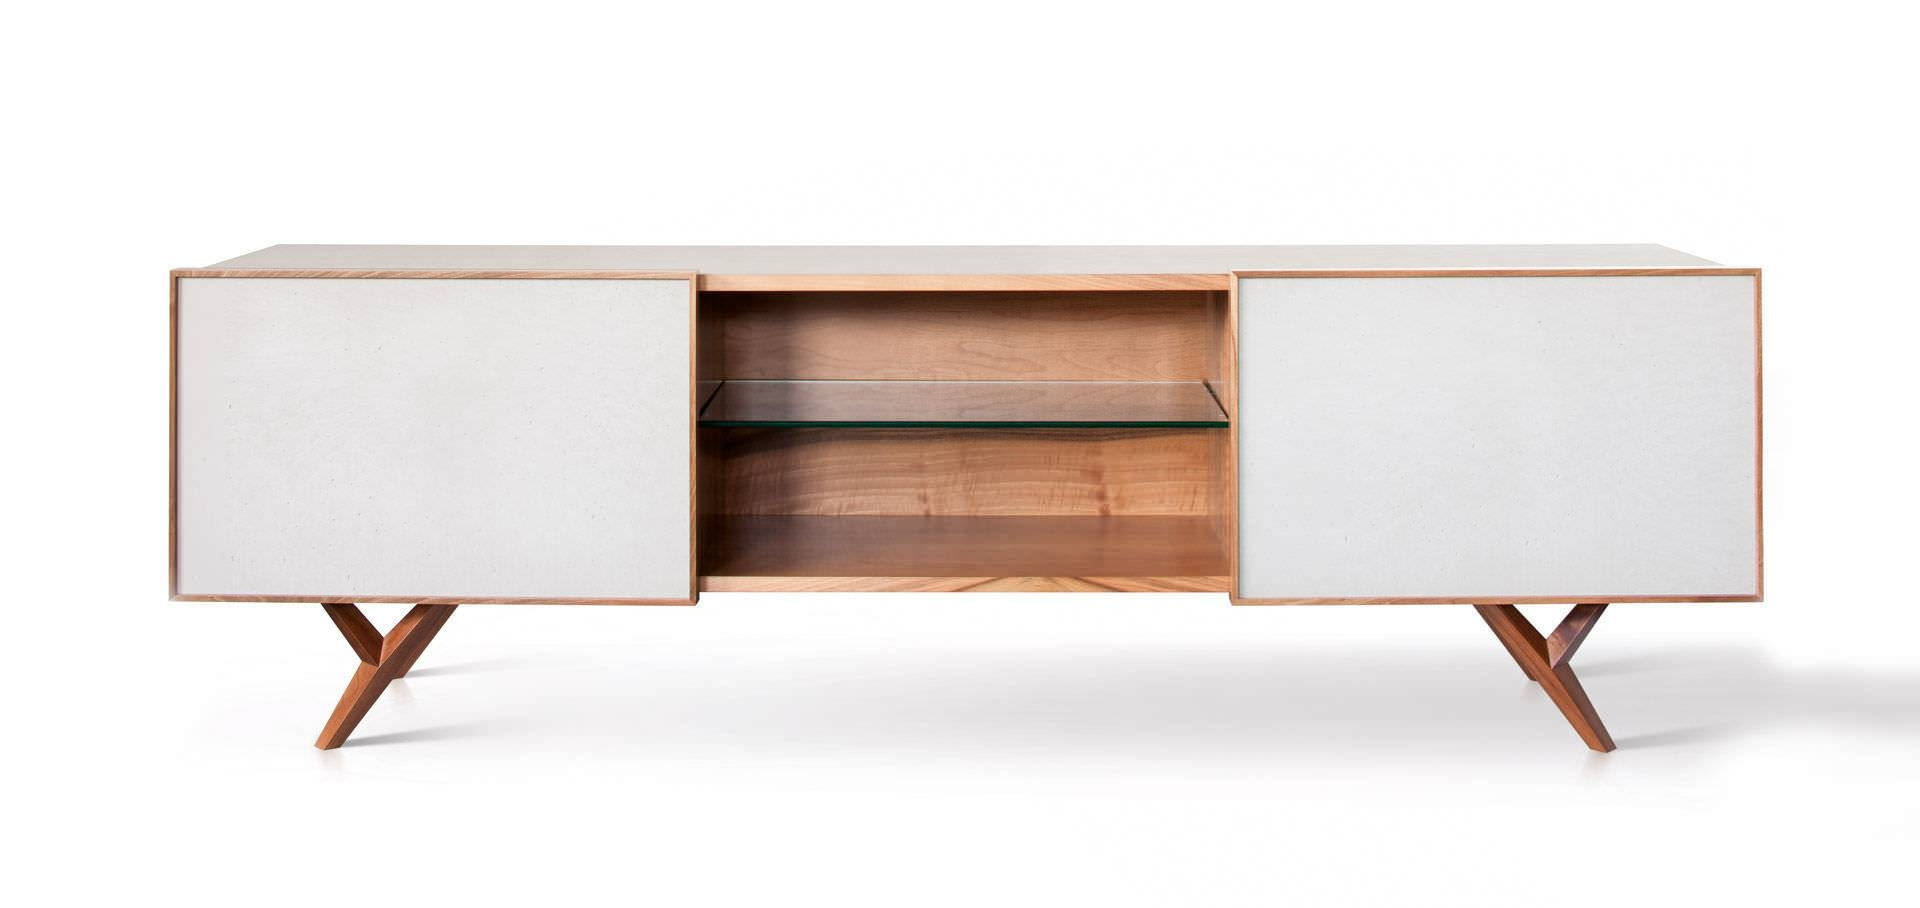 Furniture: Beautiful Profile Modern Sideboard For Living Room inside Modern Contemporary Sideboards (Image 11 of 30)